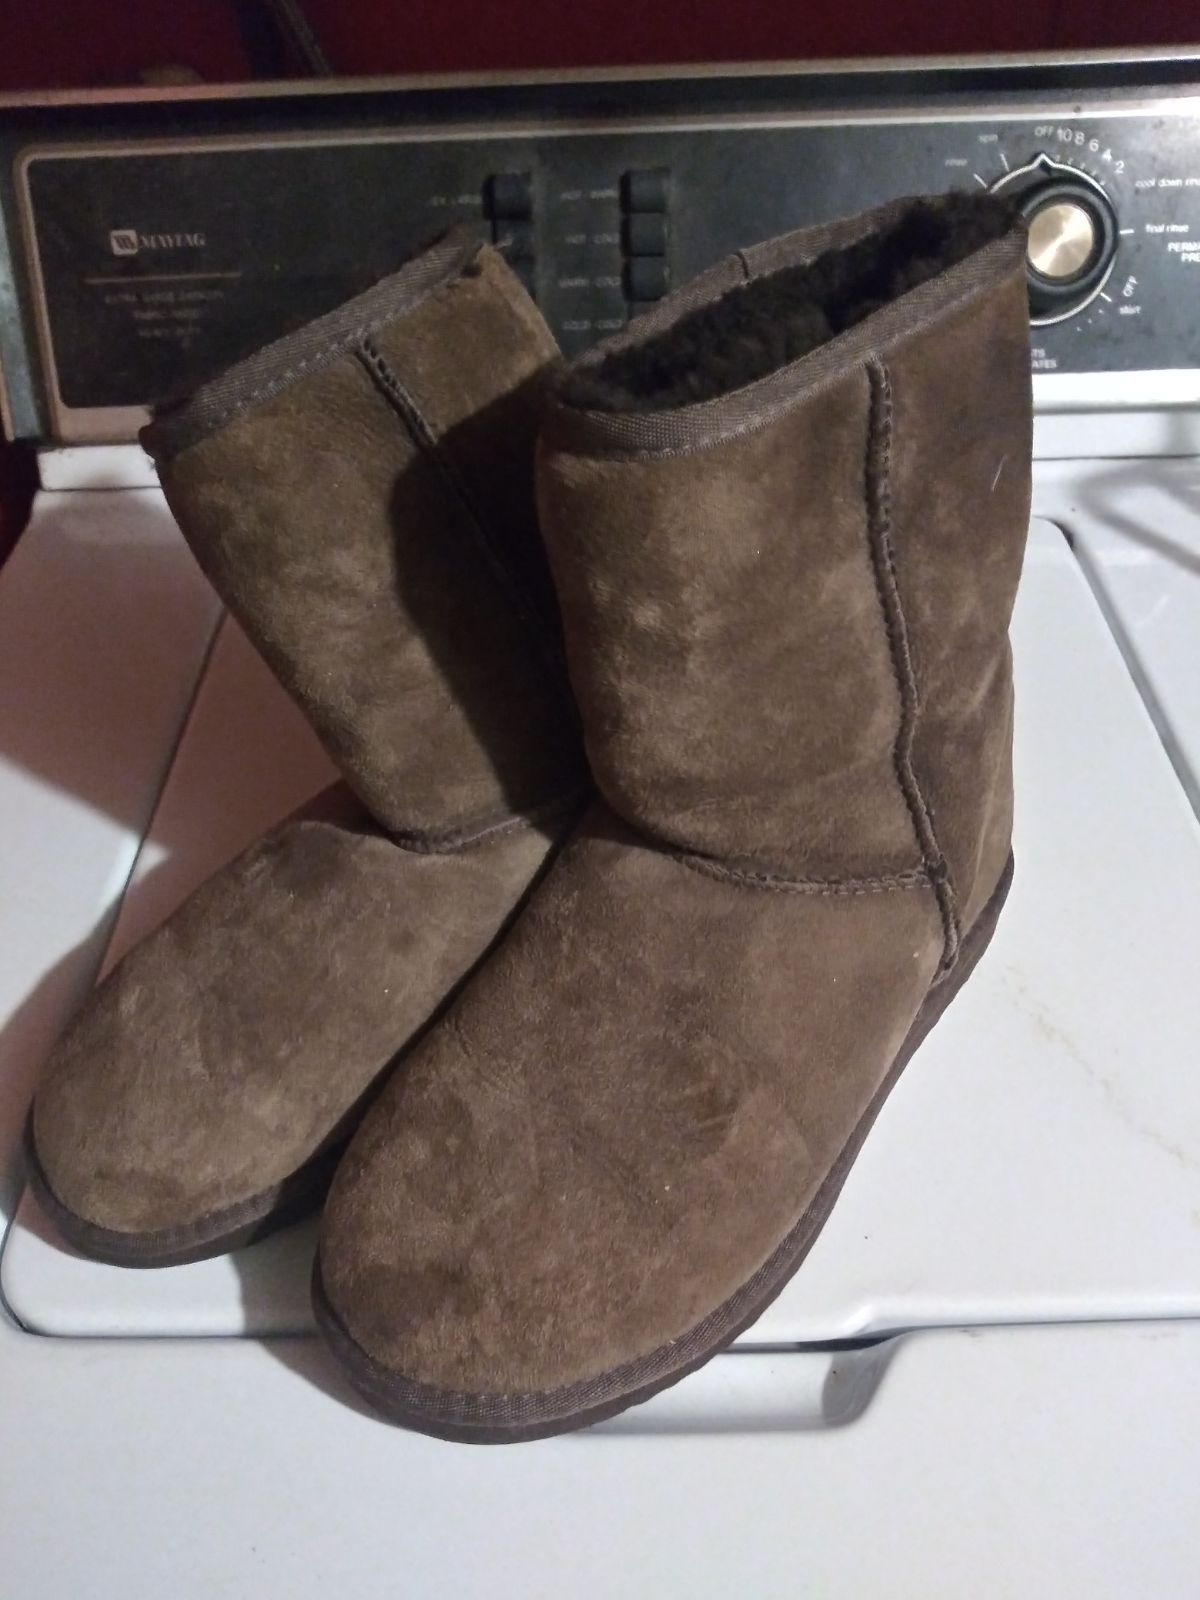 Woman's chocolate Ugg boots size 7